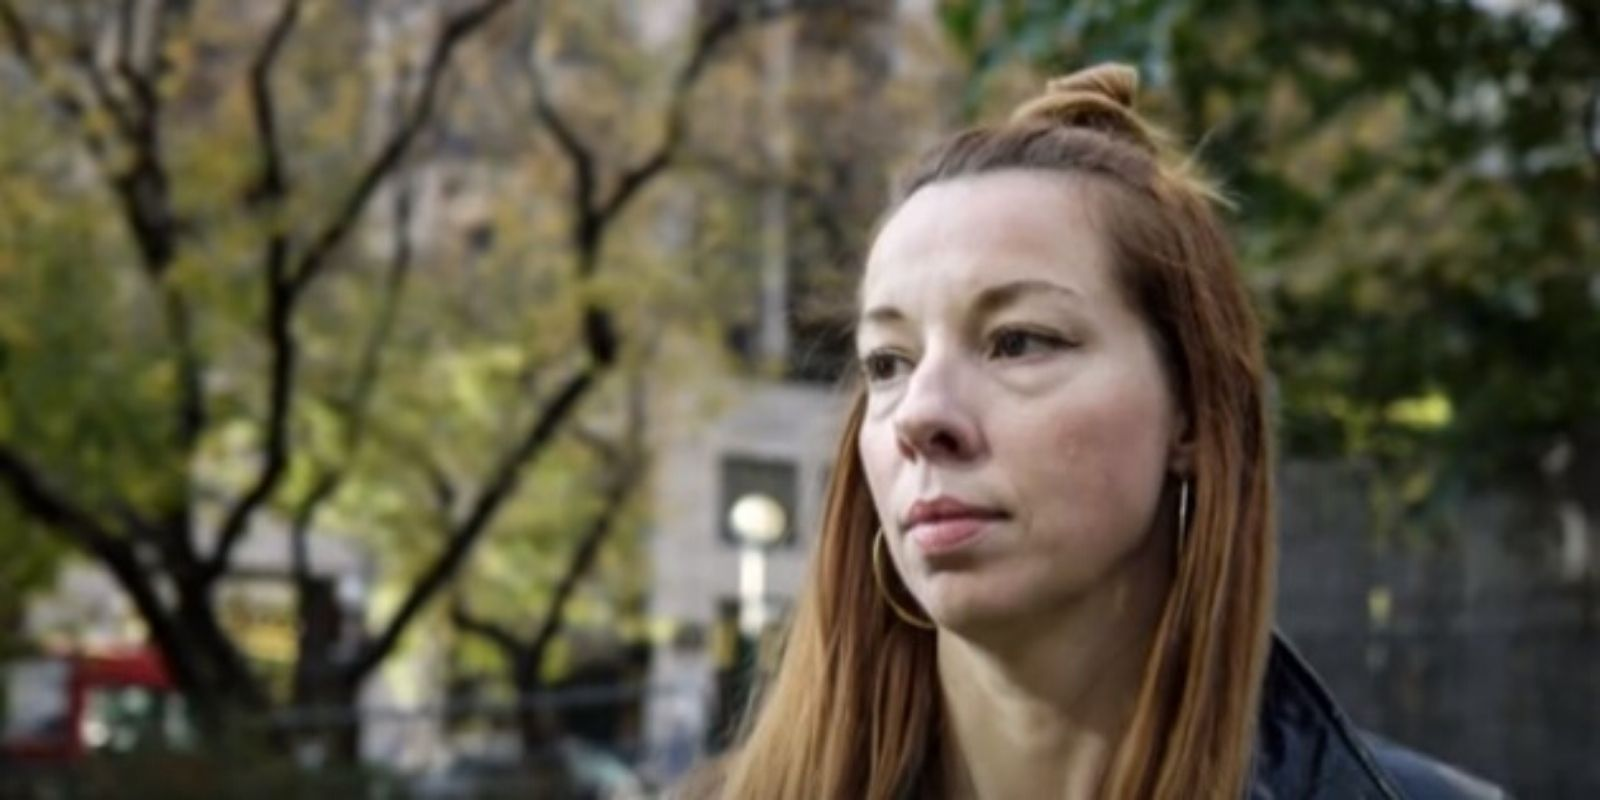 Toronto City Council votes to review library rental policies following Meghan Murphy event